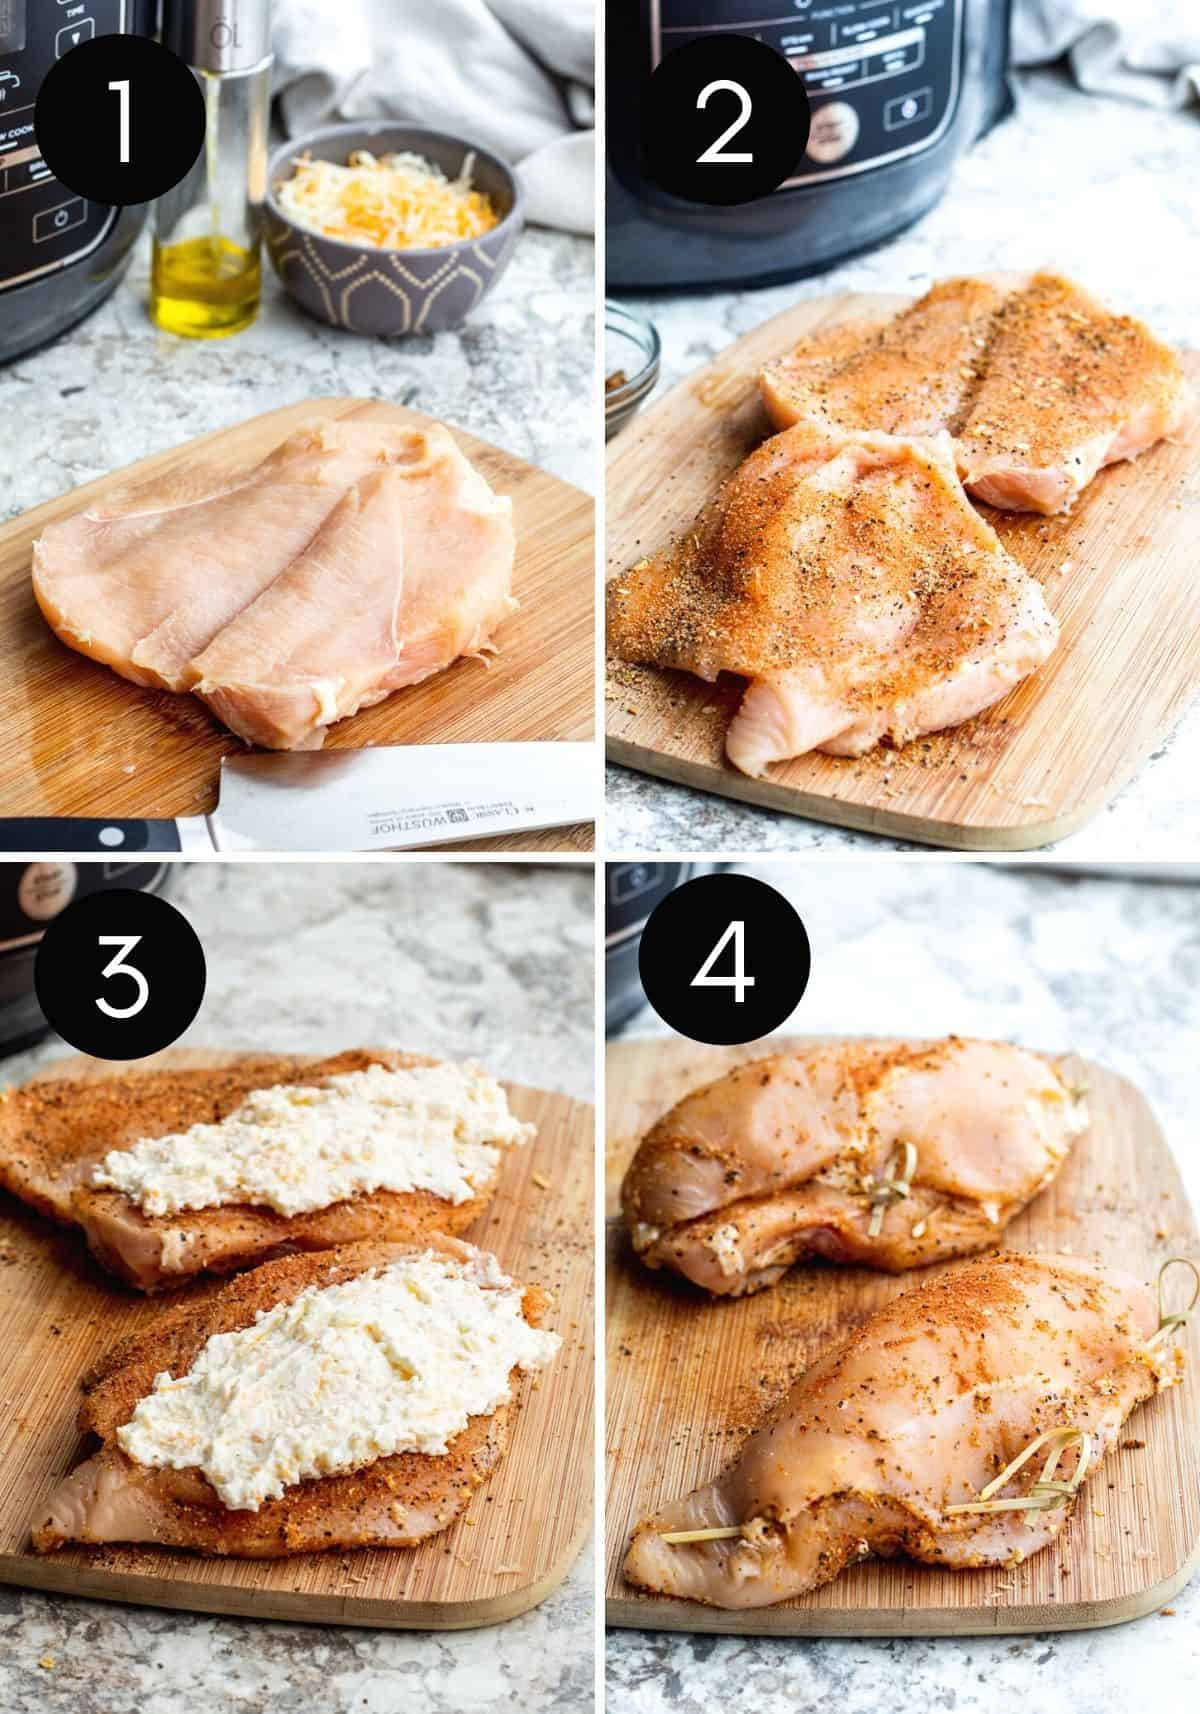 Four prep images showing chicken breasts being sliced, filled with cheese and closed with black and white numbers.